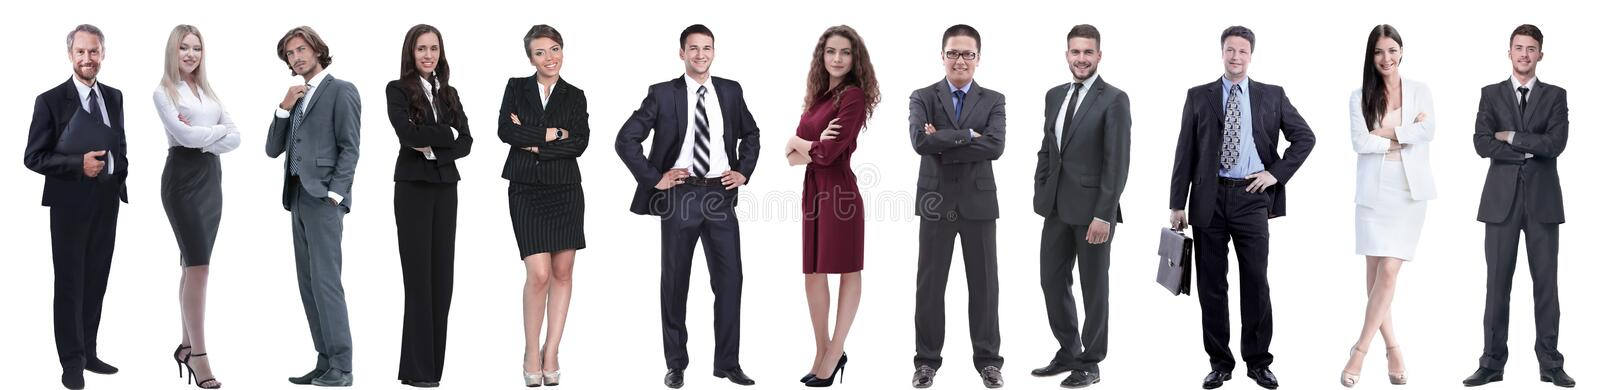 Group of successful business people isolated on white. Background royalty free stock images